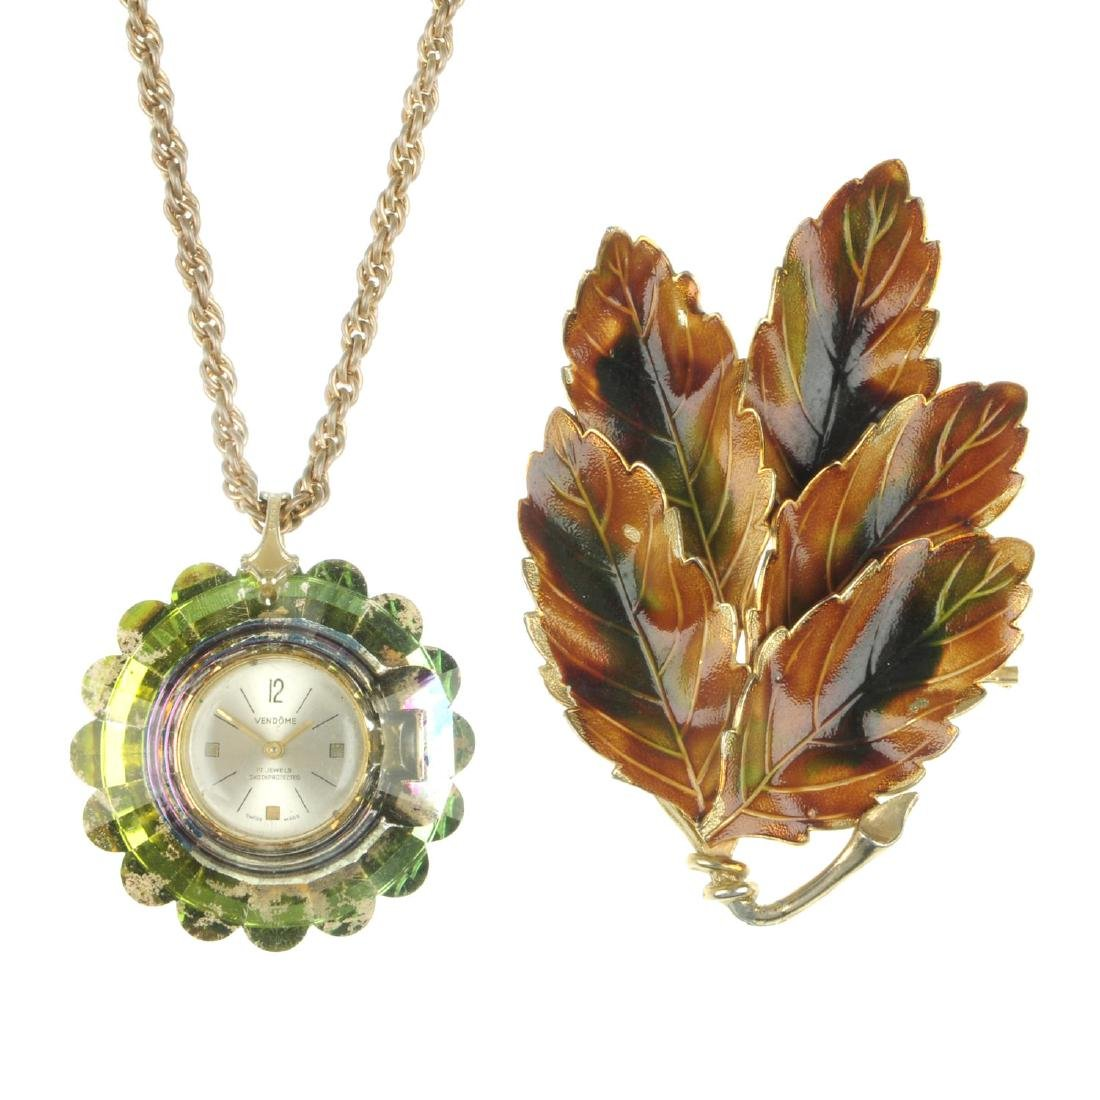 A selection of costume jewellery. To include a Vendome